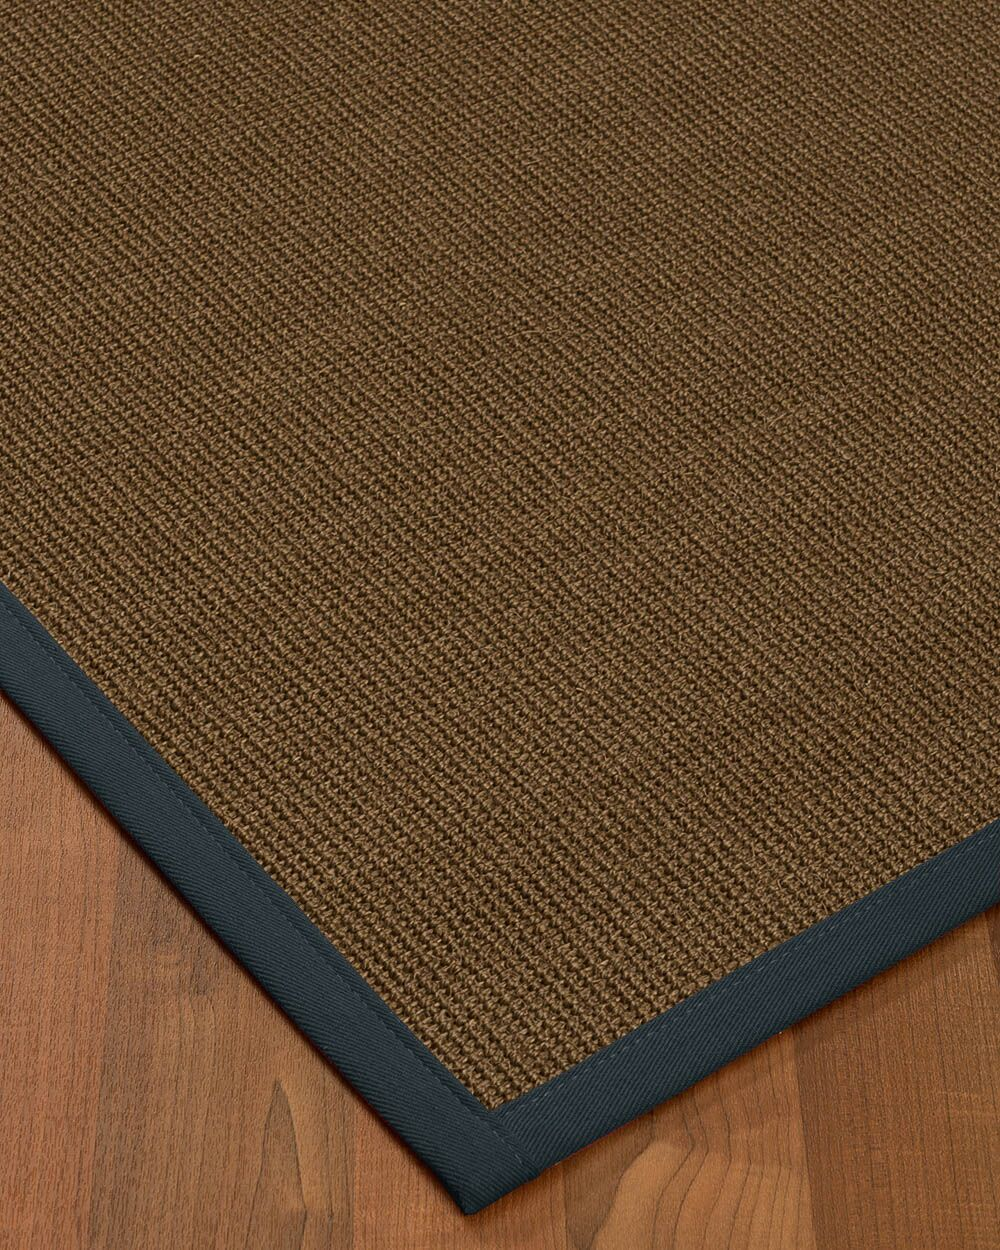 Kerner Border Hand-Woven Brown/Marine Area Rug Rug Size: Rectangle 5' x 8', Rug Pad Included: Yes